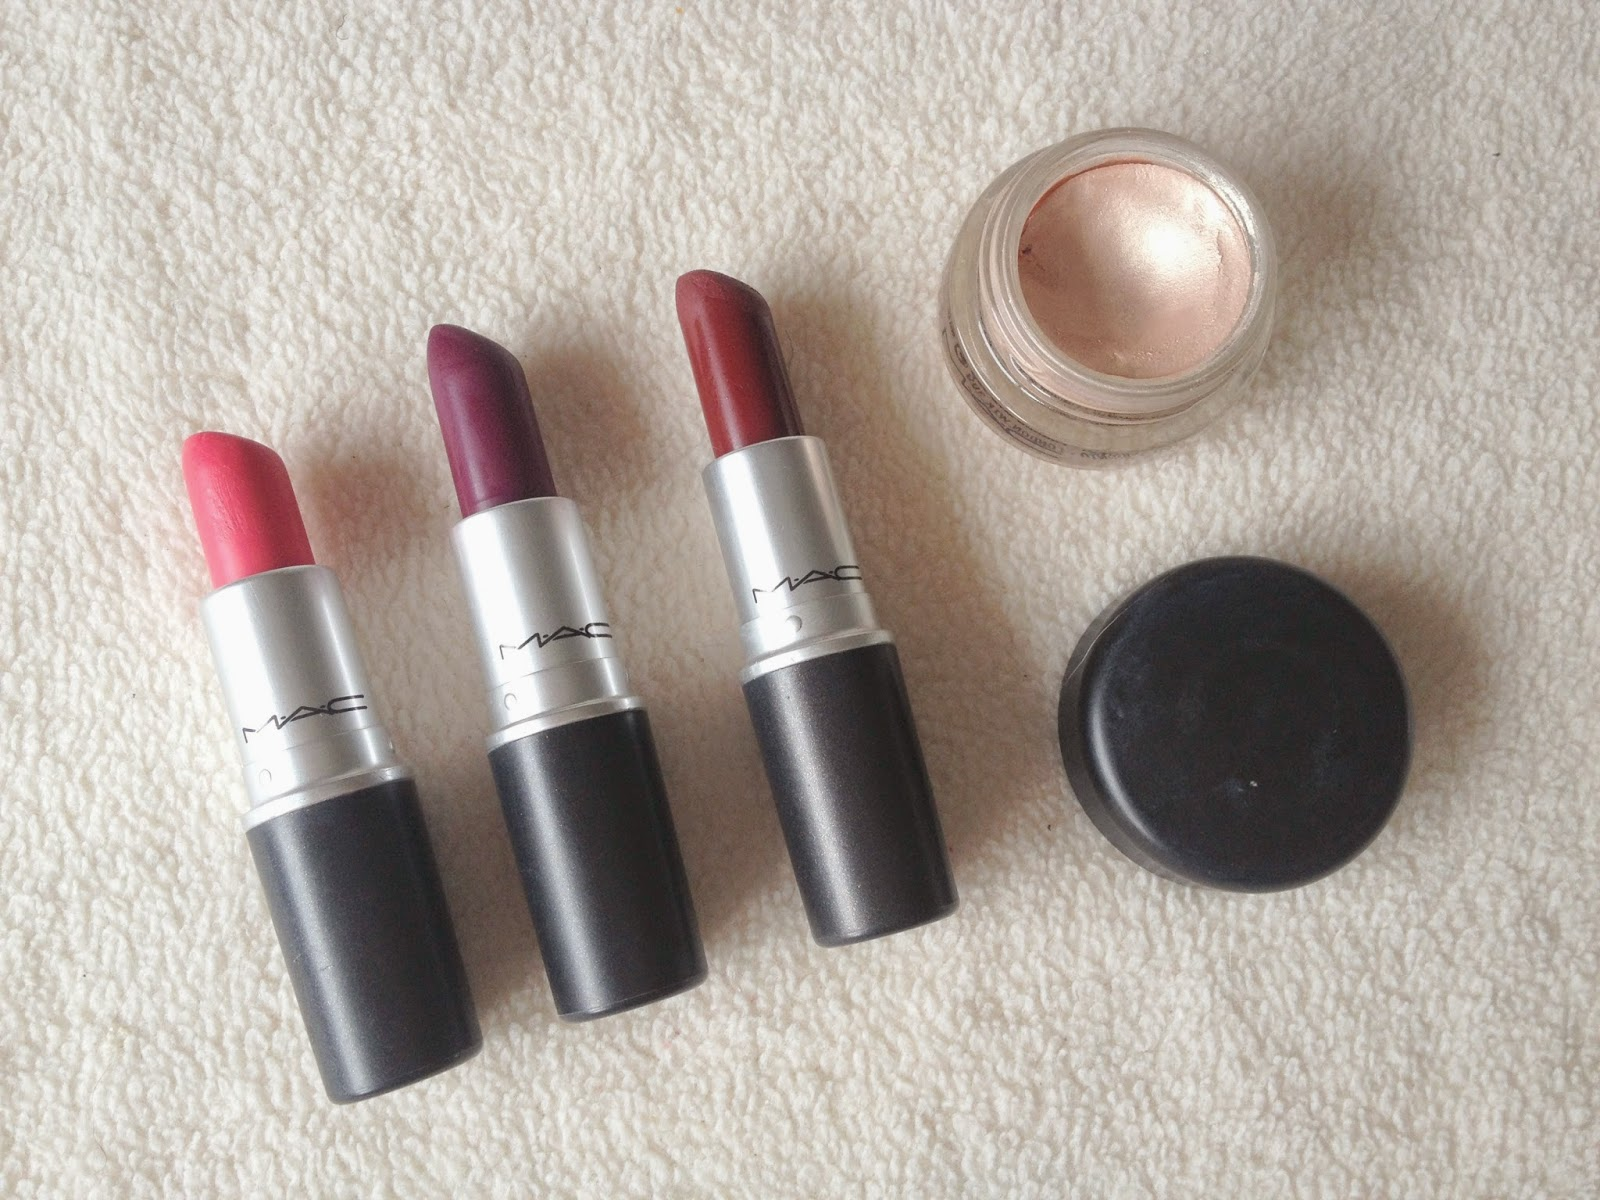 MAC Collection, MAC Lipsticks in Impassioned, Rebel and Diva, MAC Paintpot in Bare Study